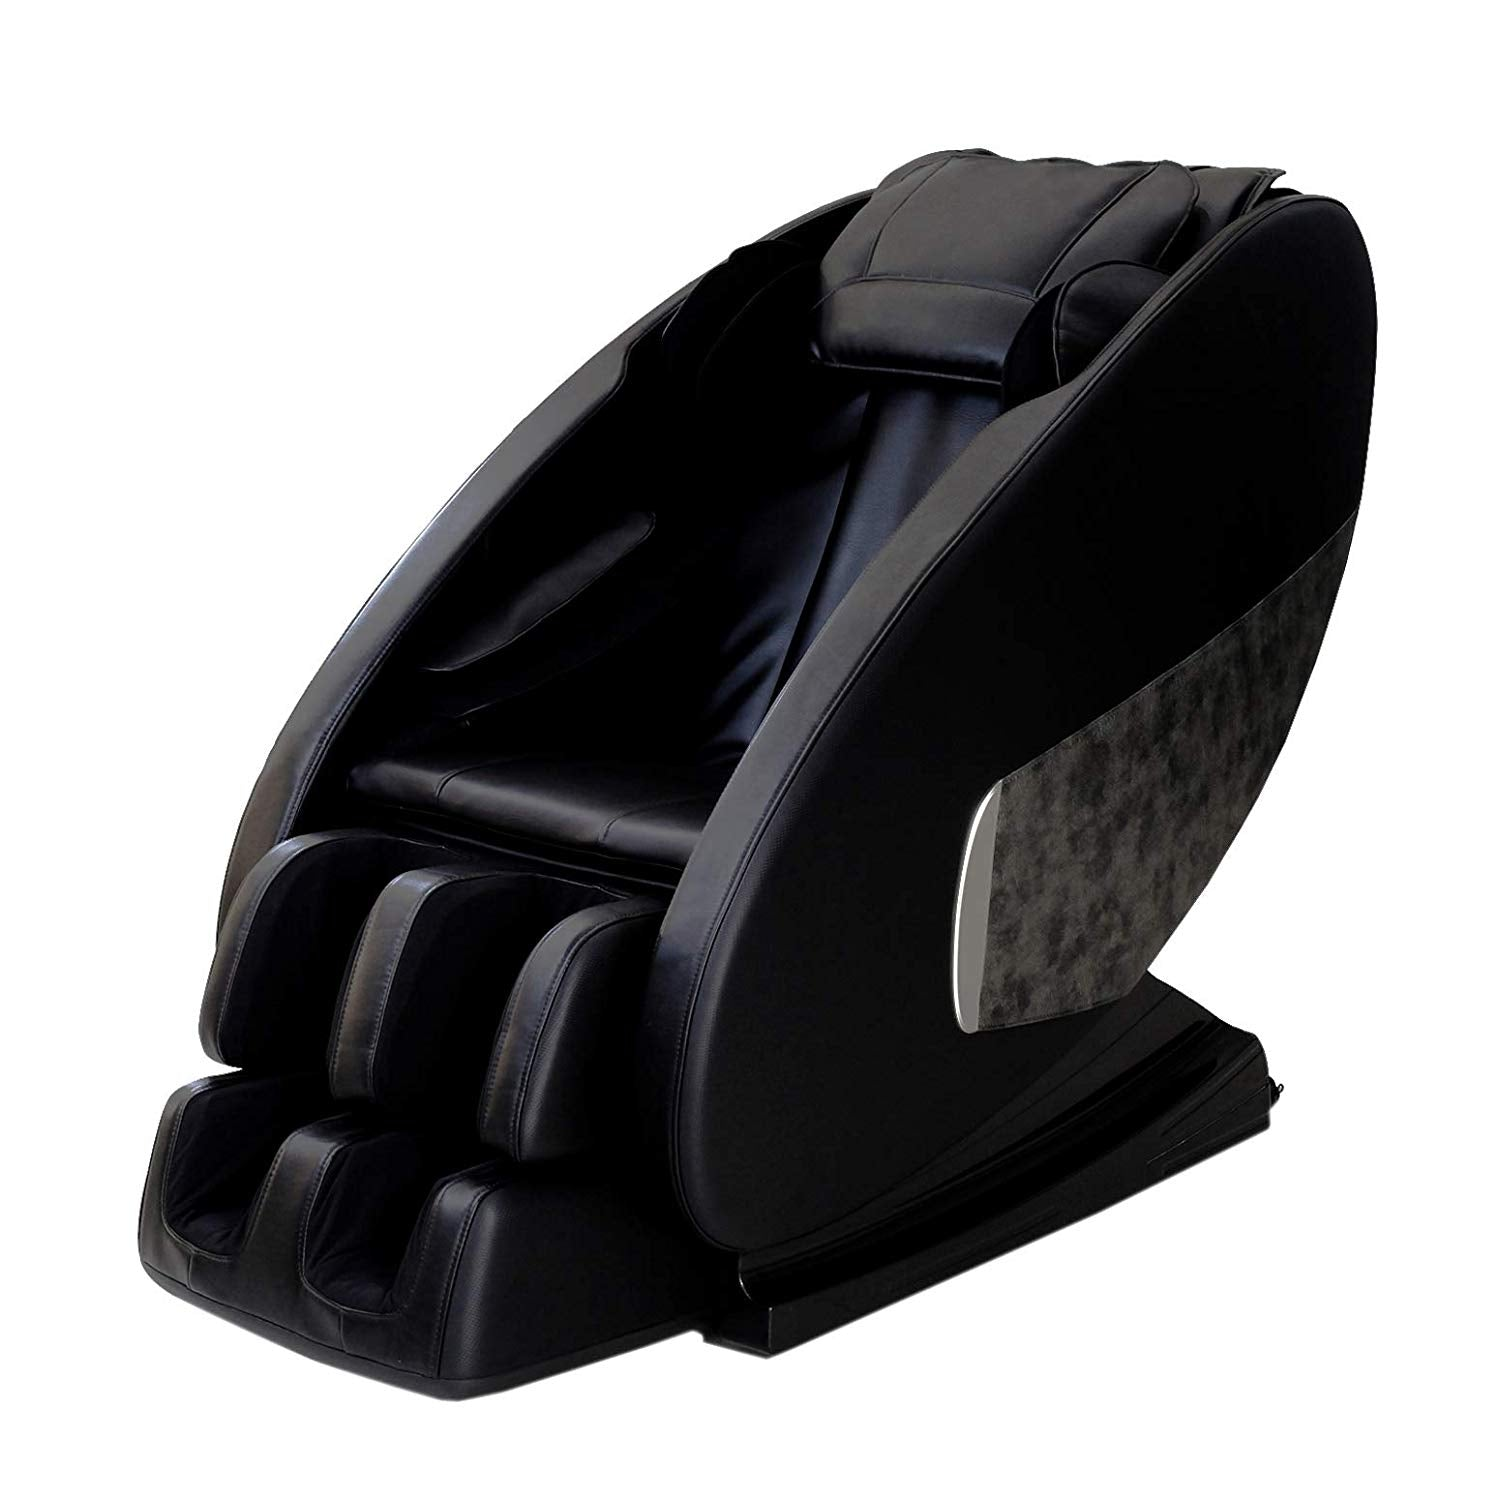 Ootori Q7 Massage Chair